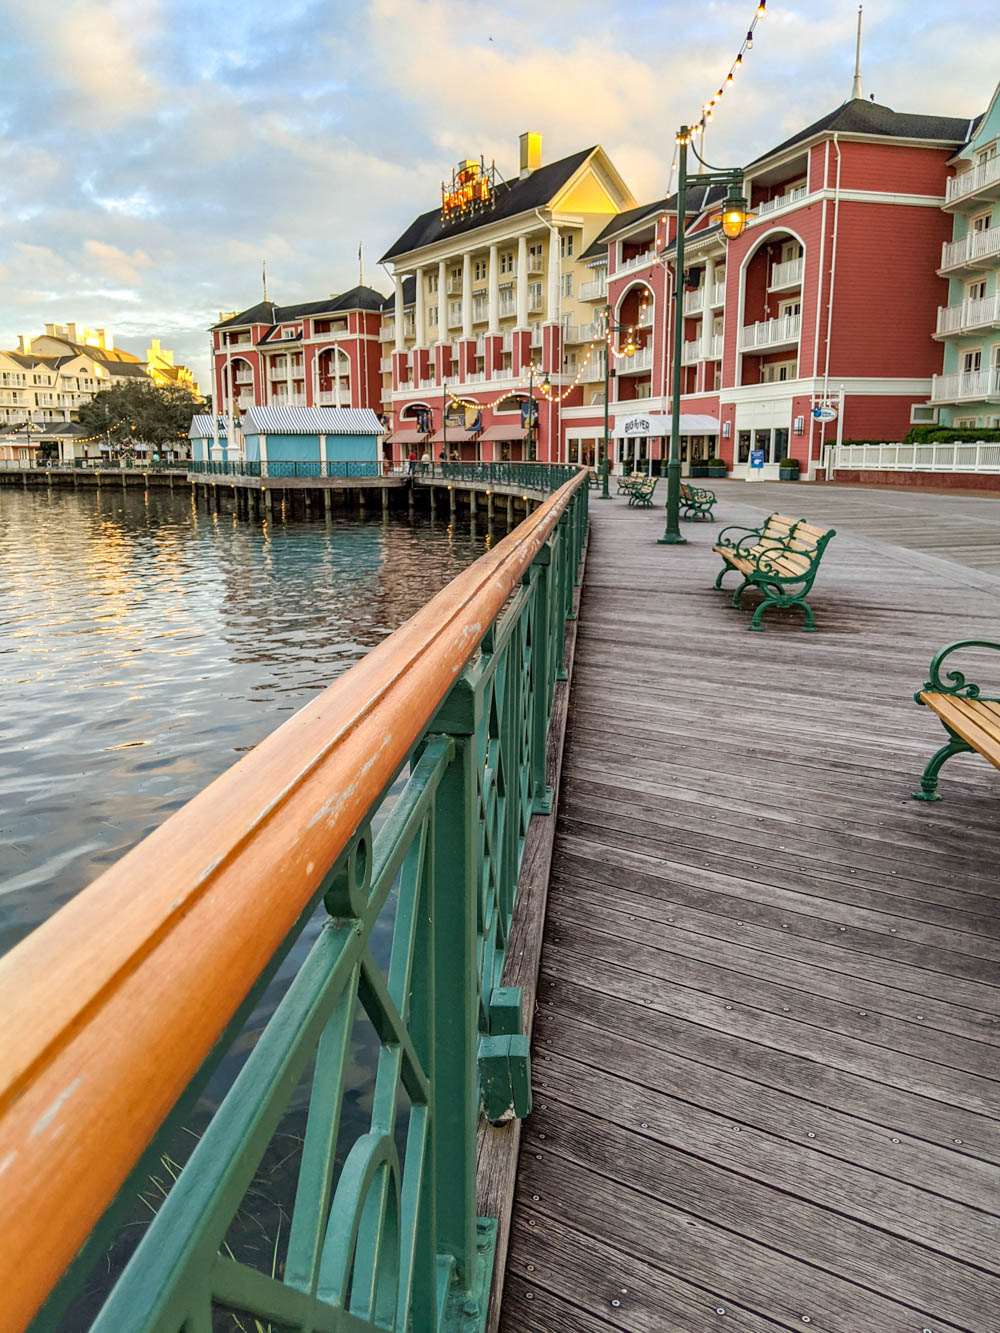 Visiting Disney World During the Pandemic: Everything You're Eager to Know | Disney World in 2020, what it's like to visit disney world right now. | Empty Boardwalk